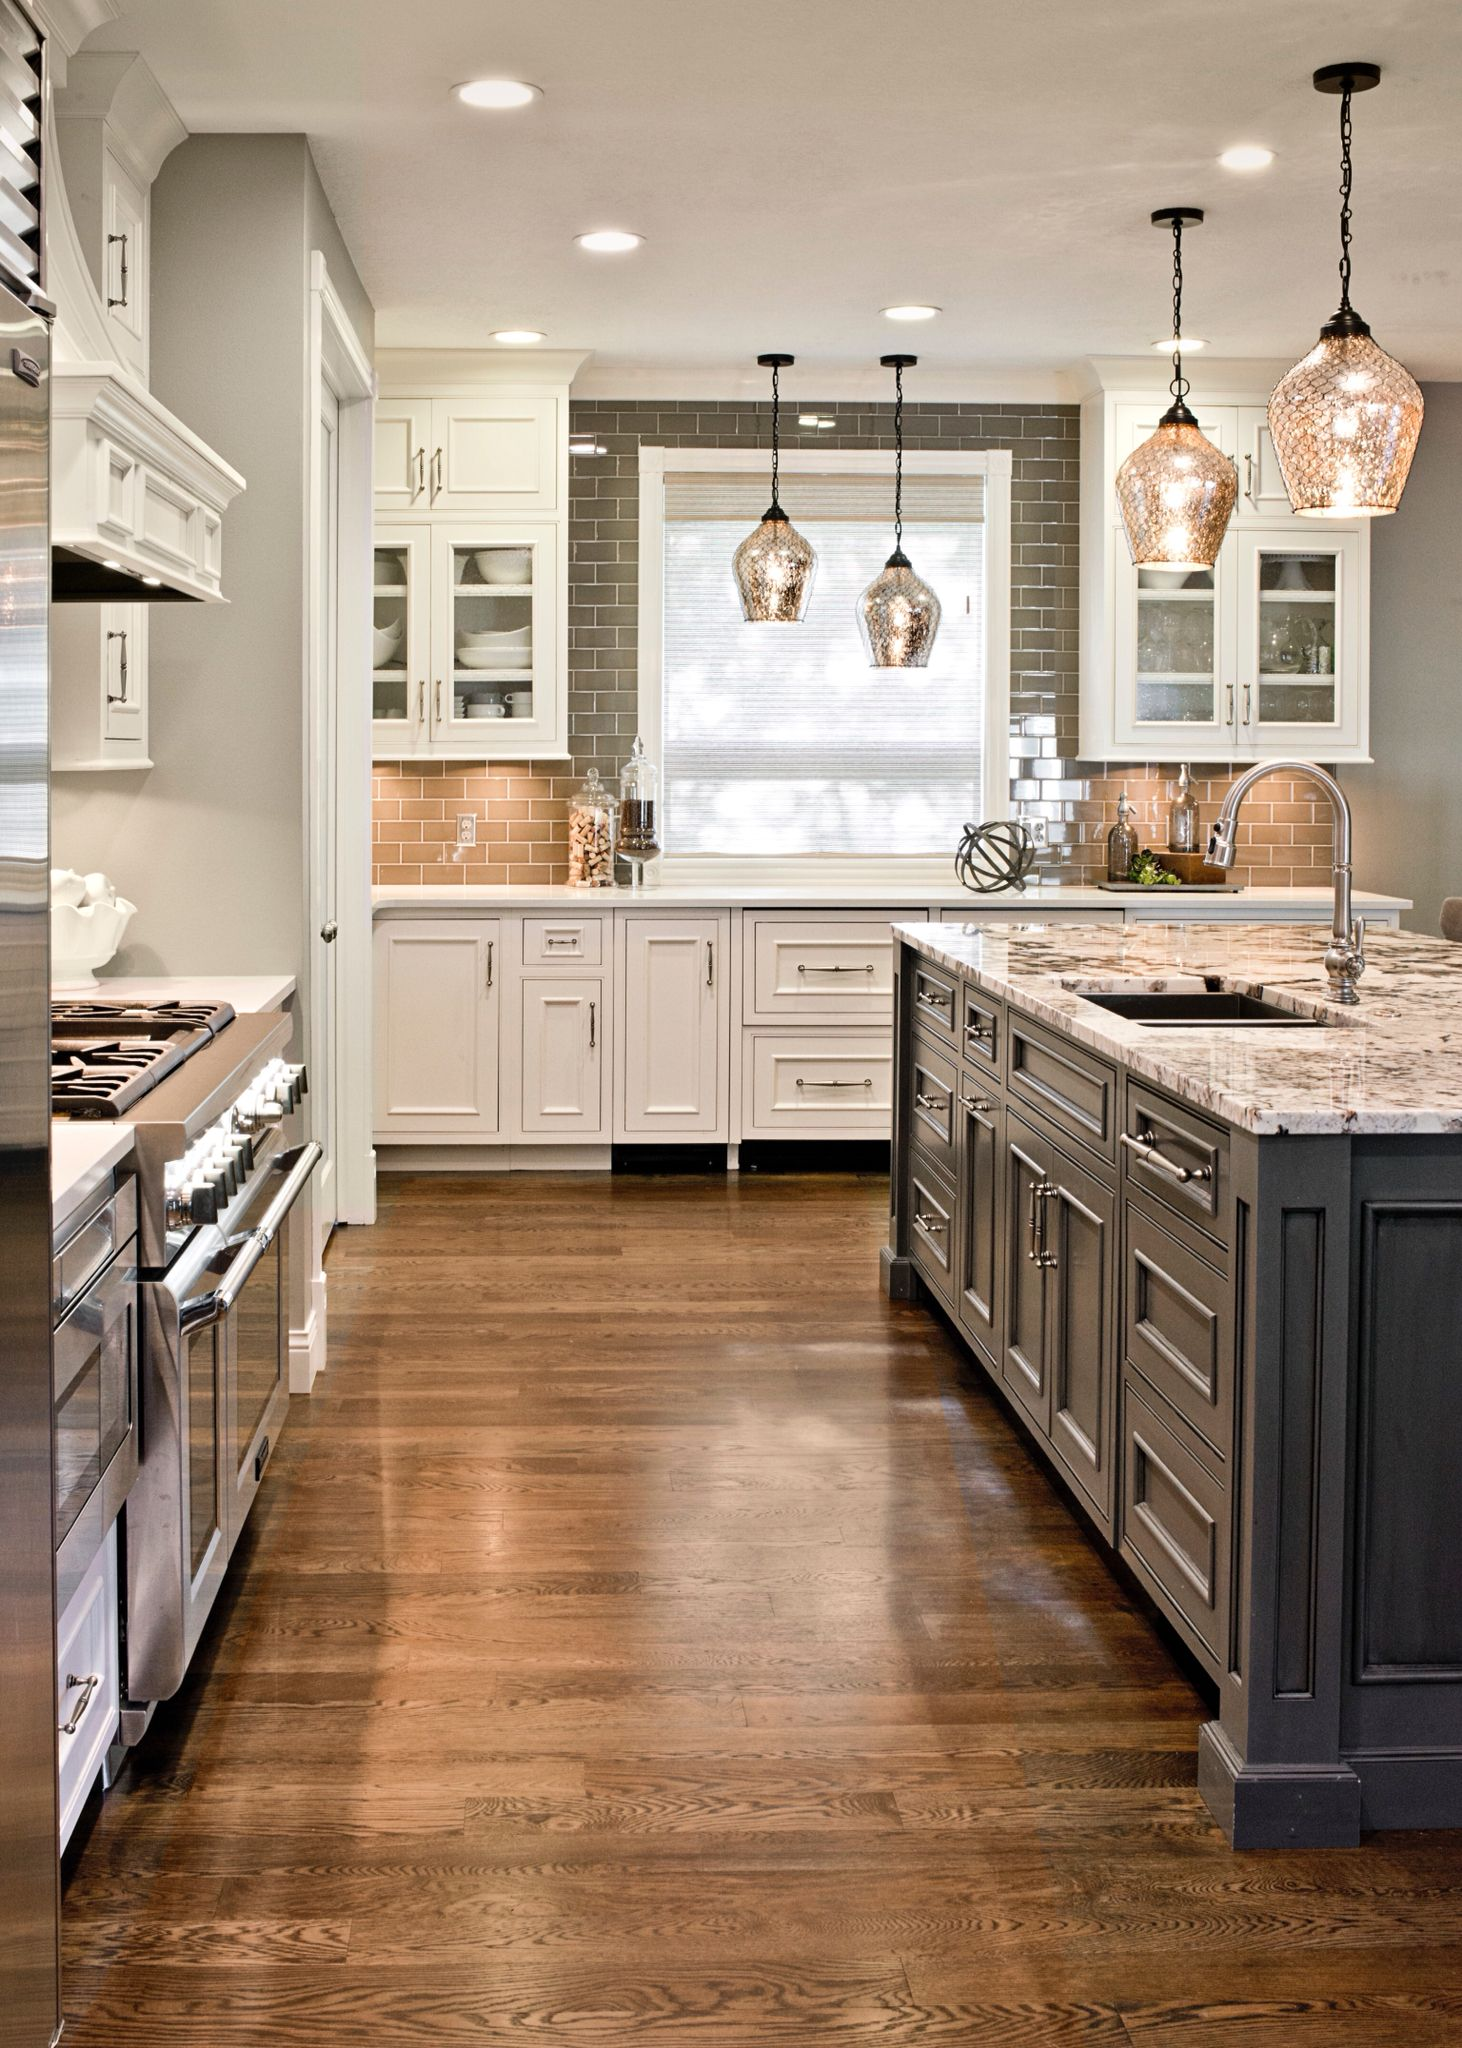 Gray Island And White Cabinets Granite Top White Oak Floor With Ebony Stain Kitchen Backsplash Designs Kitchen Tile Backsplash With Oak Wood Floor Kitchen